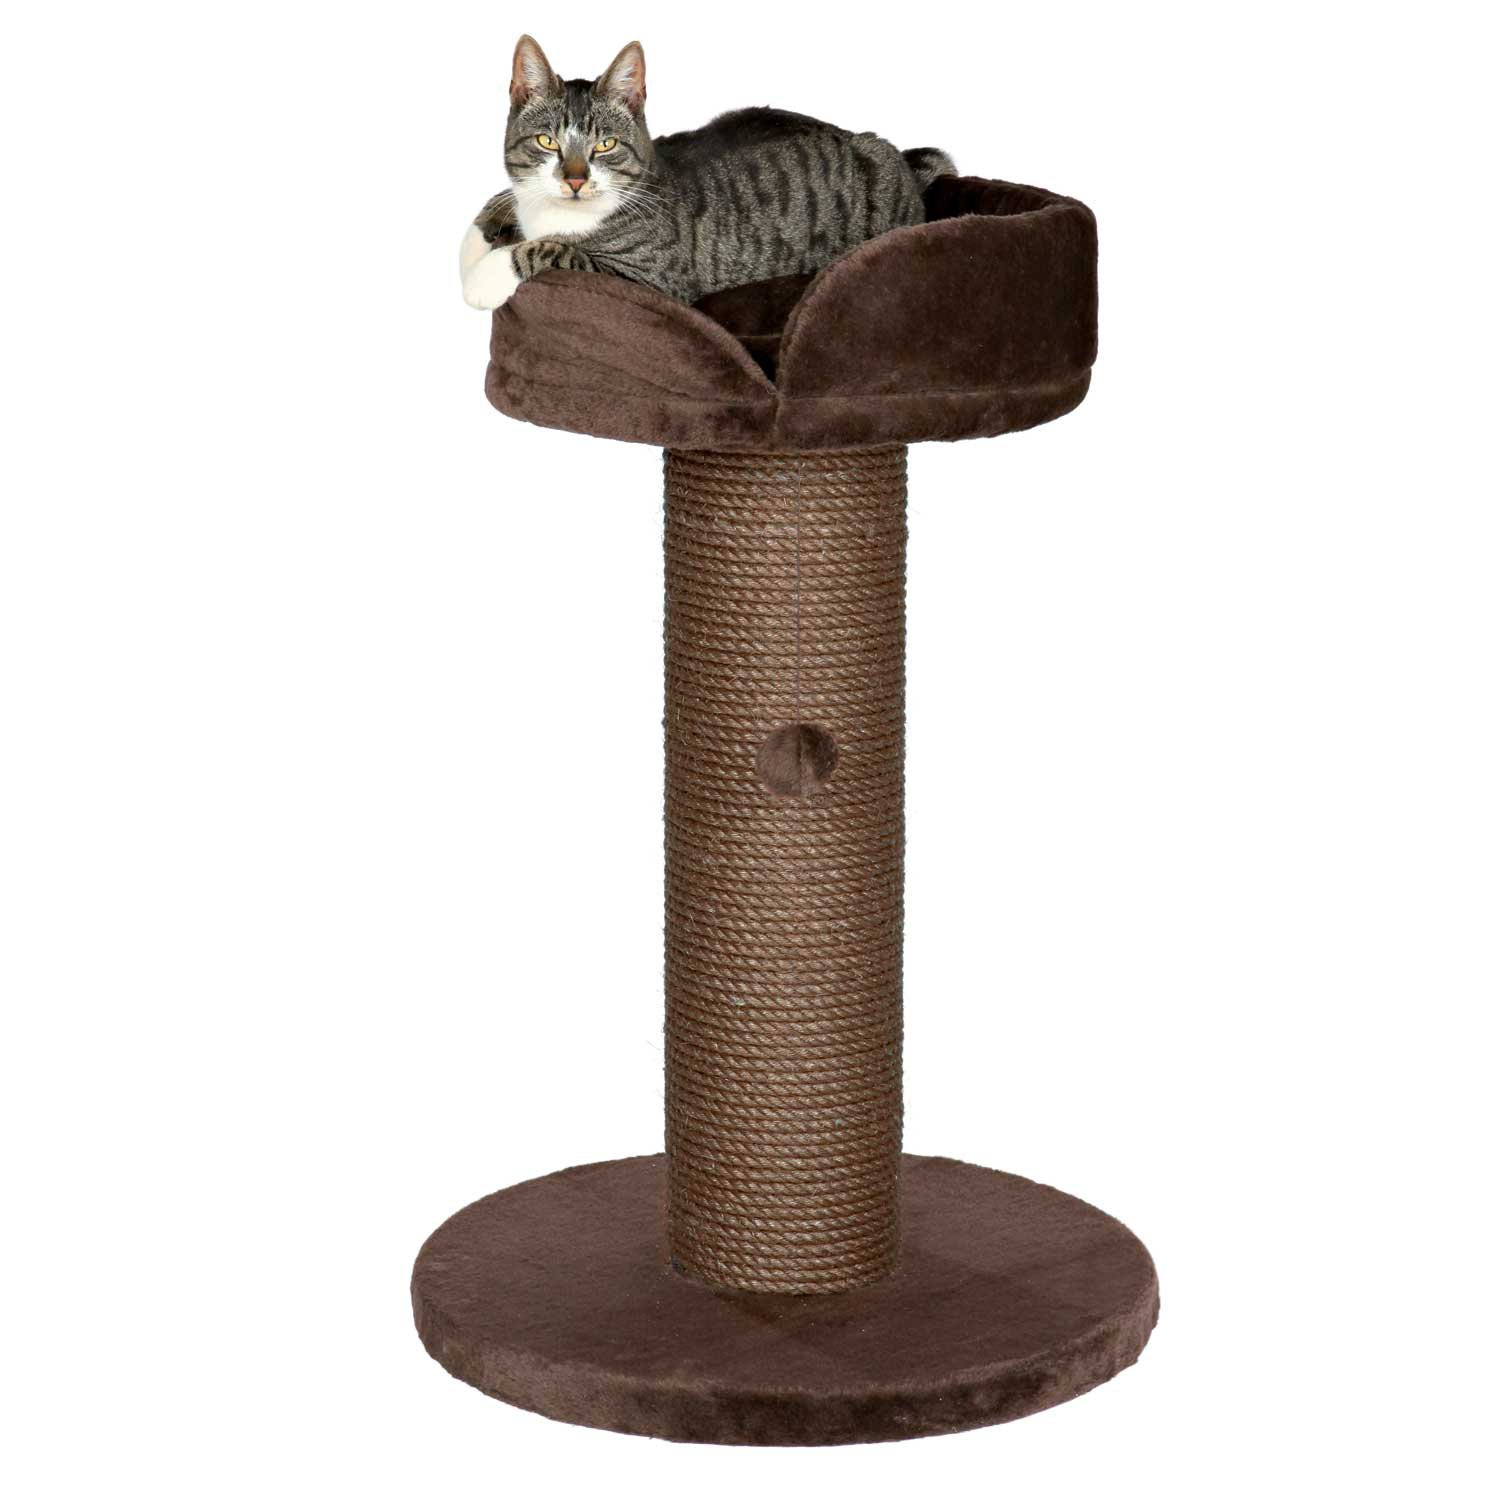 Trixie Pepino Scratching Post in Chocolate Brown 35 22.75 IN